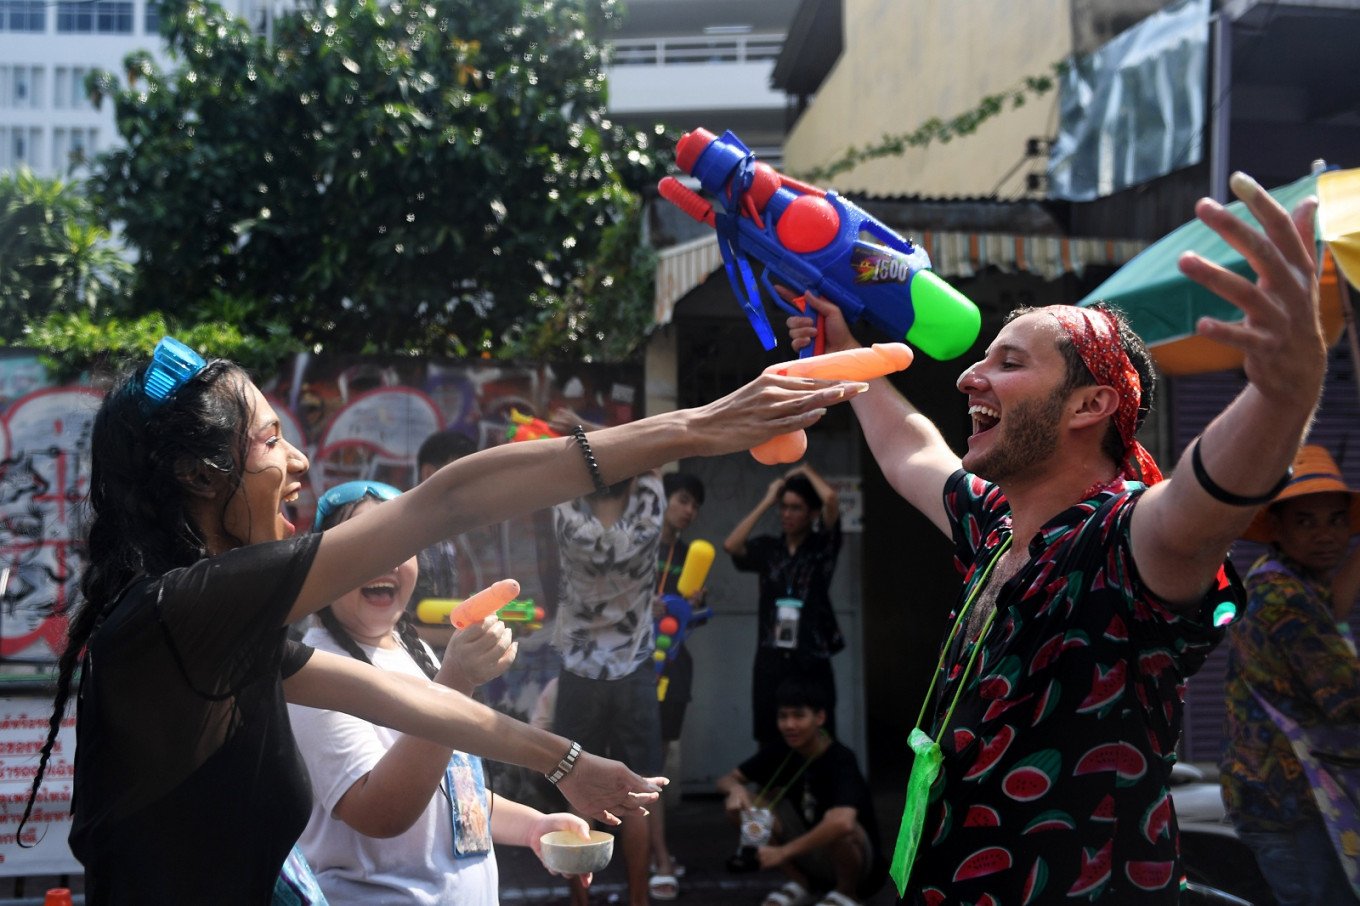 Thai new year splashes in with water fights, raves